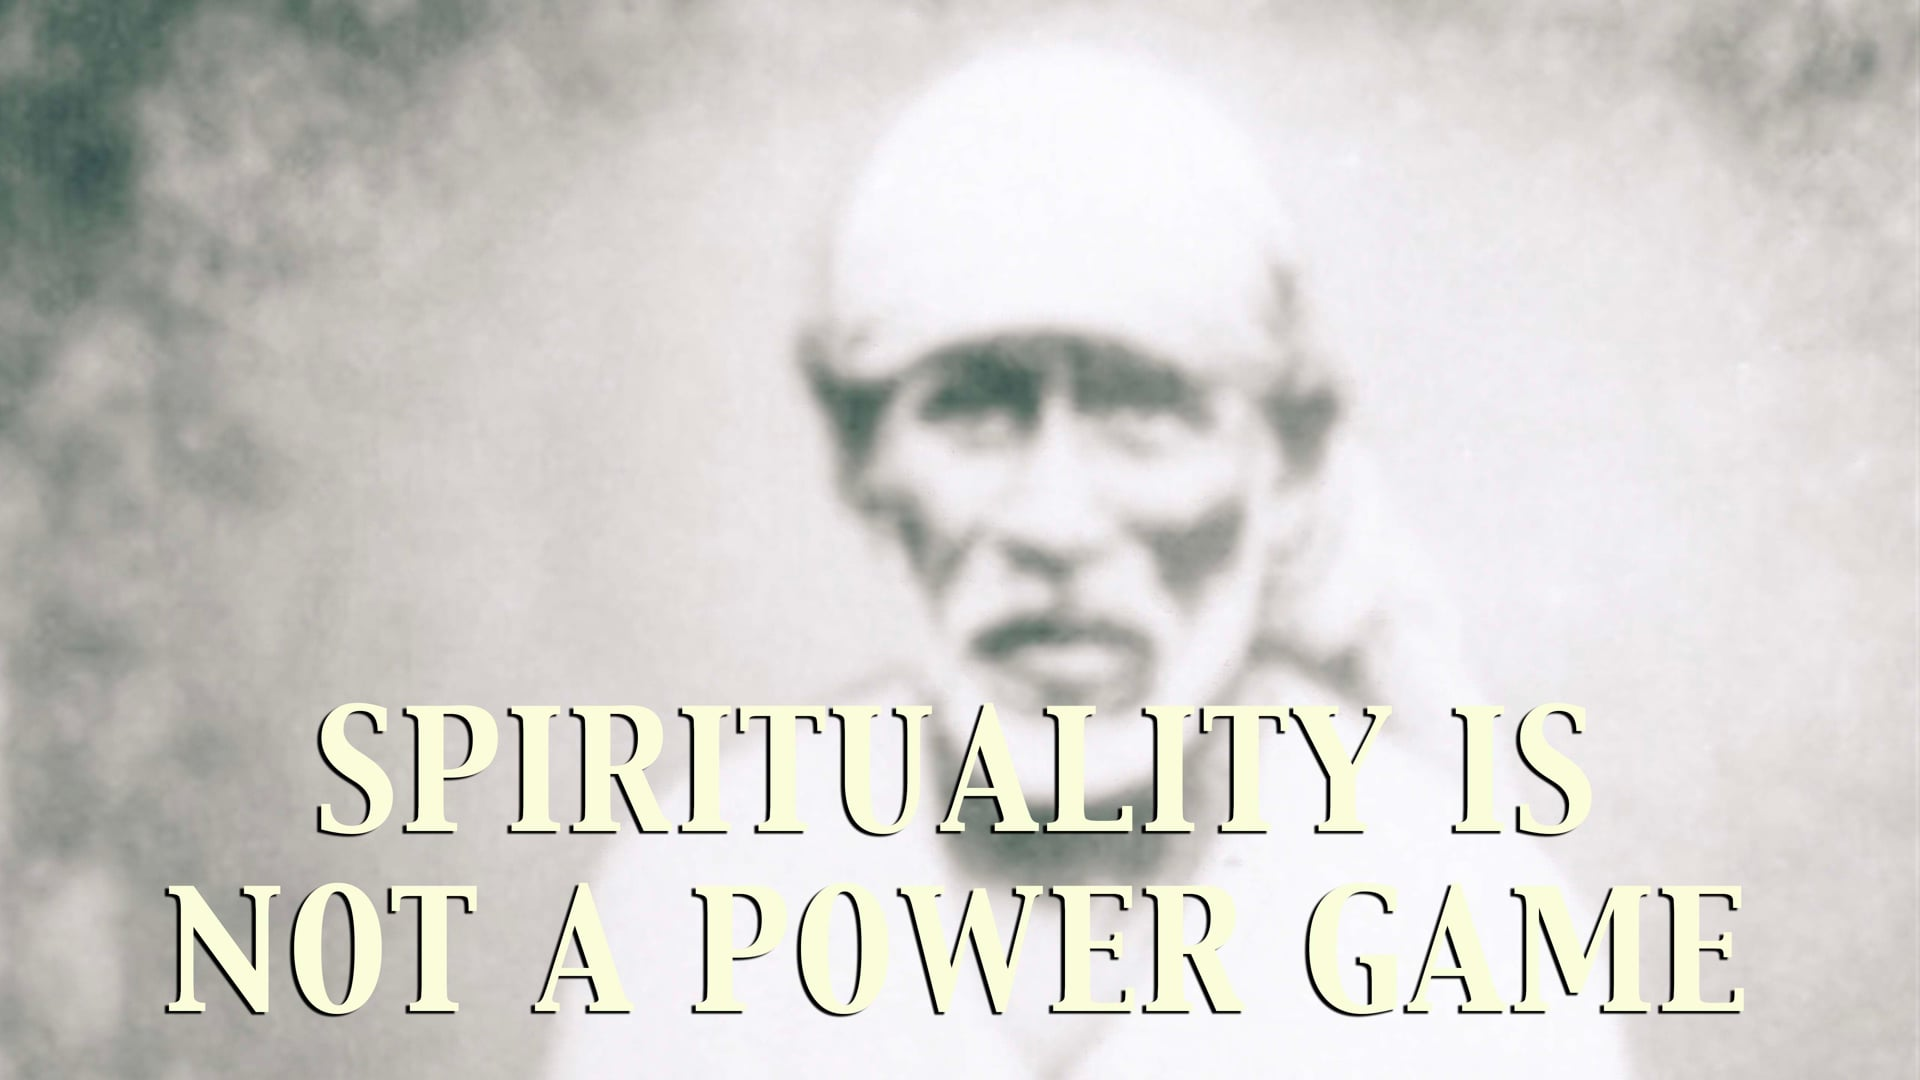 Spirituality is not a power game